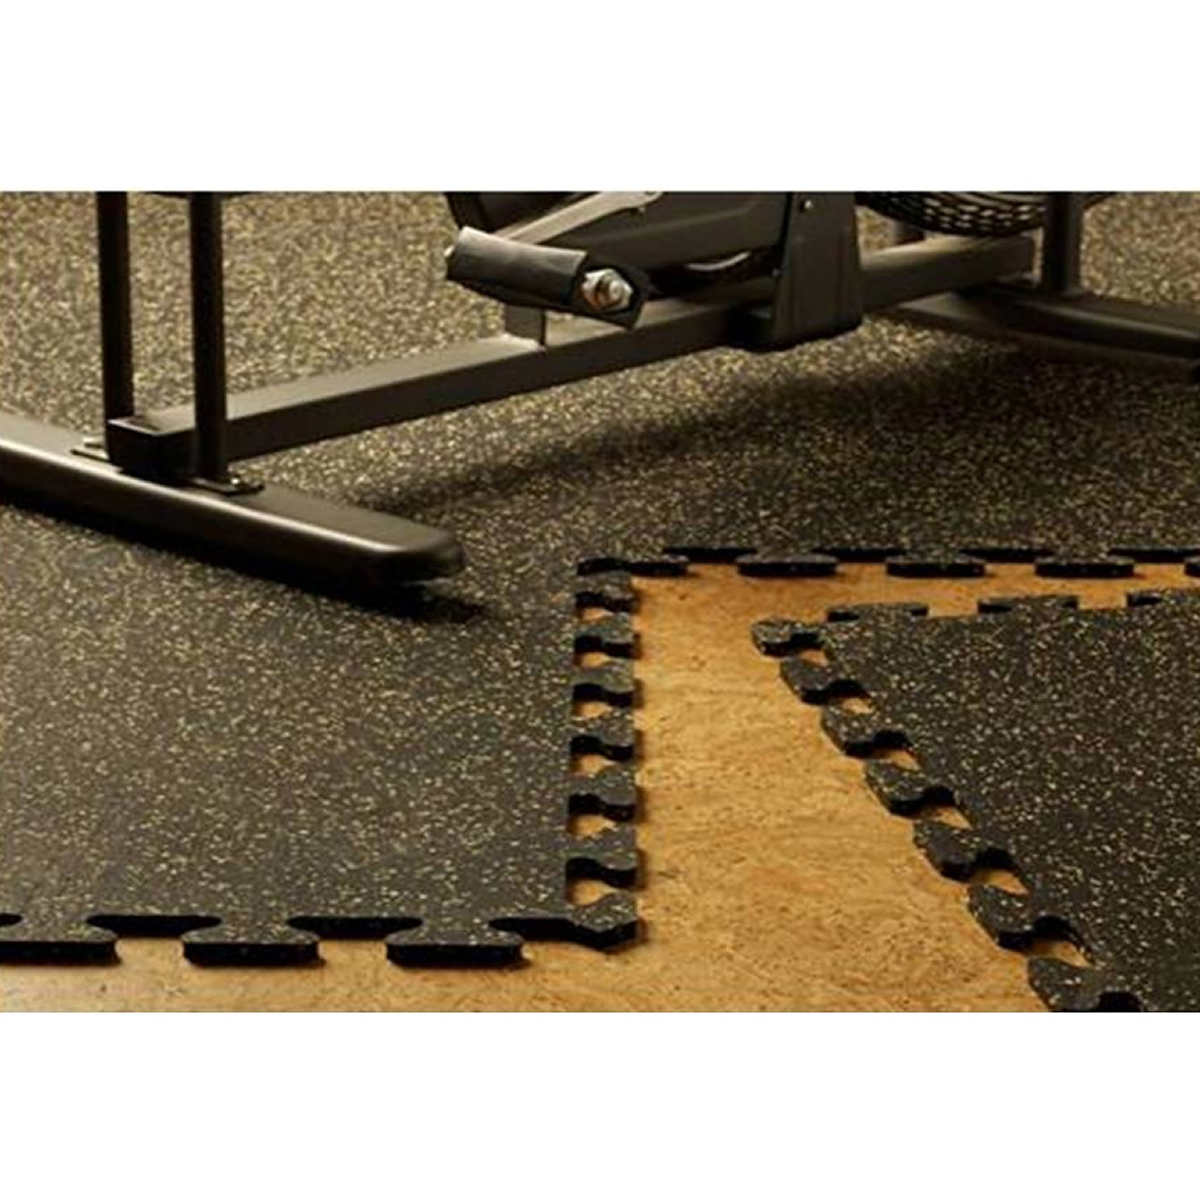 Ez flex interlocking recycled rubber floor tiles interlocking recycled rubber floor tiles 1 1 dailygadgetfo Gallery